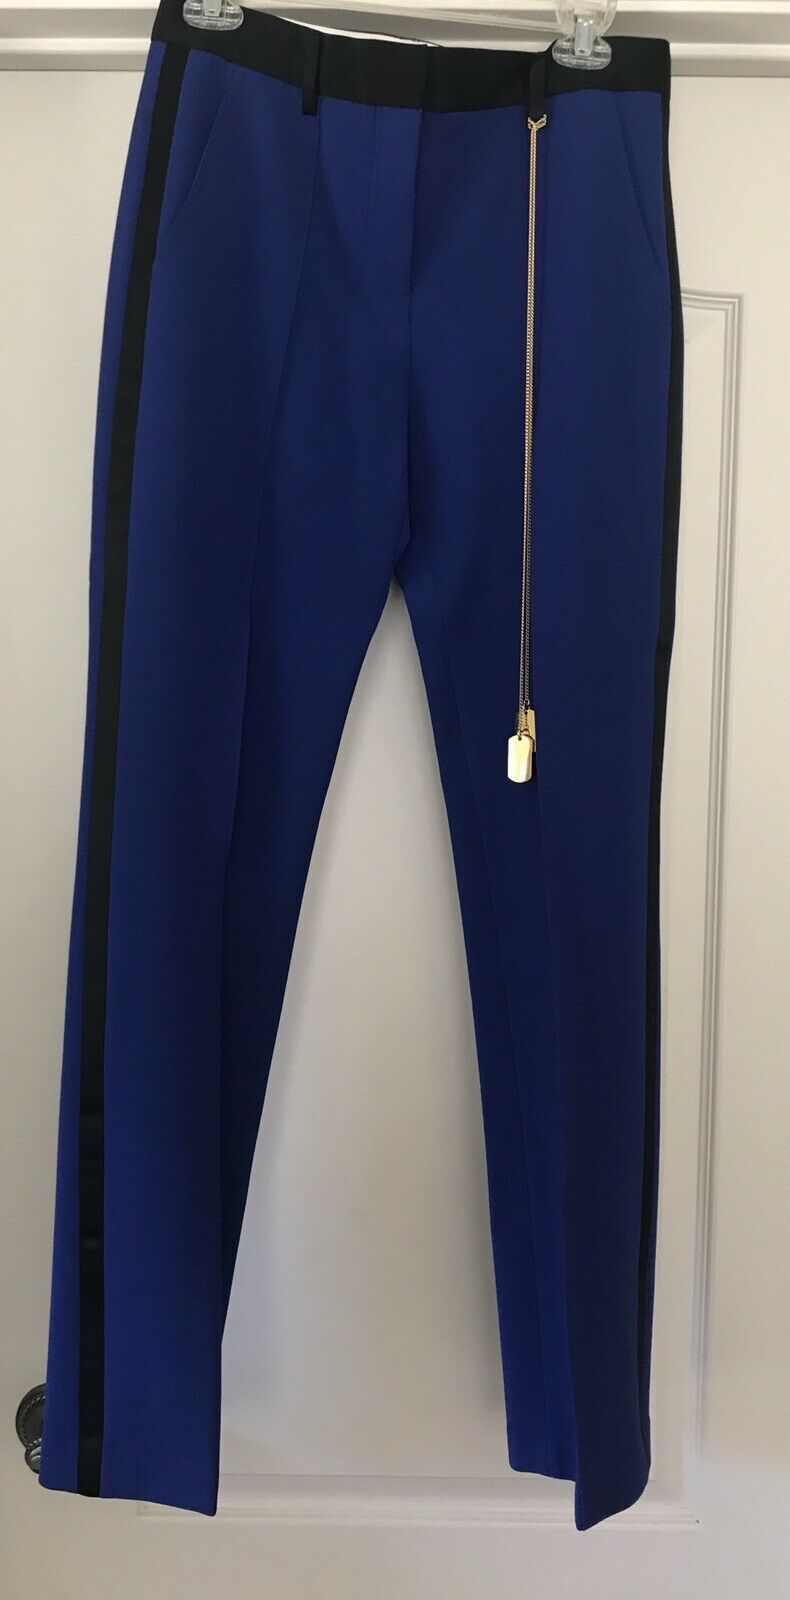 Adam Lippes bluee Pants NWT  Forty Five Ten Size 4